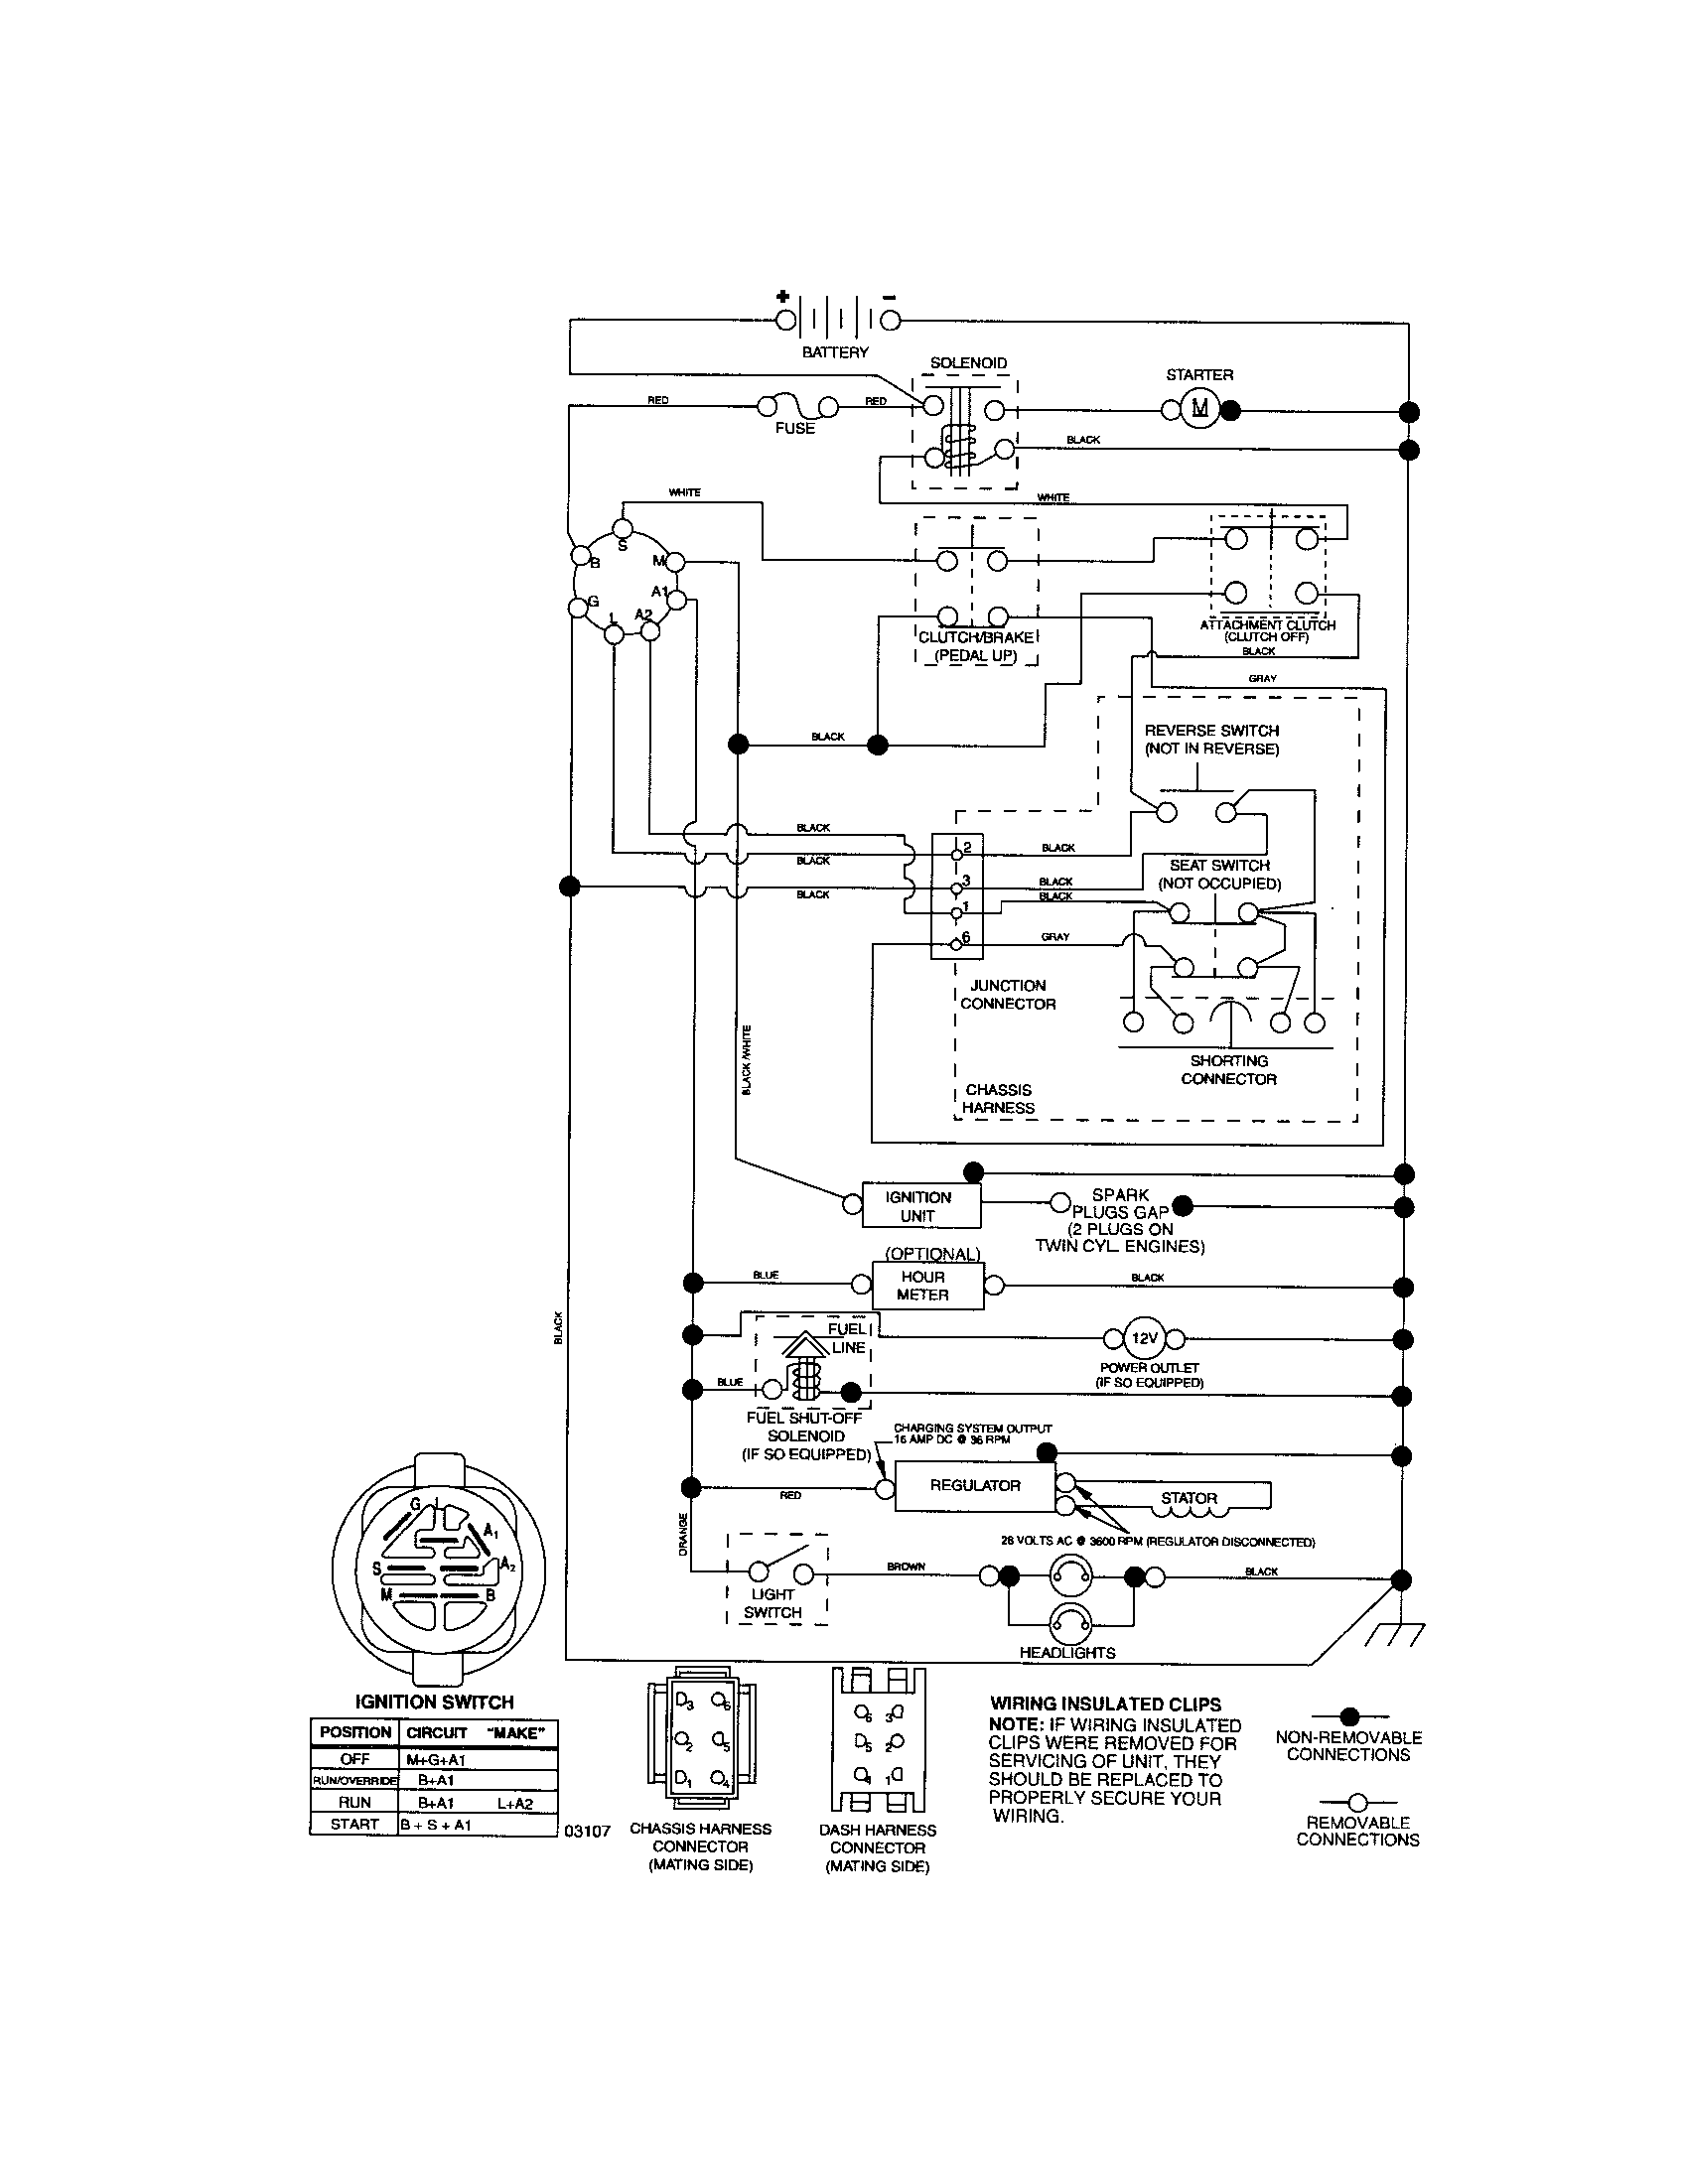 6af5f1447fd13c8443376822ddc1e105 craftsman riding mower electrical diagram wiring diagram murray lawn mower wiring diagram at crackthecode.co